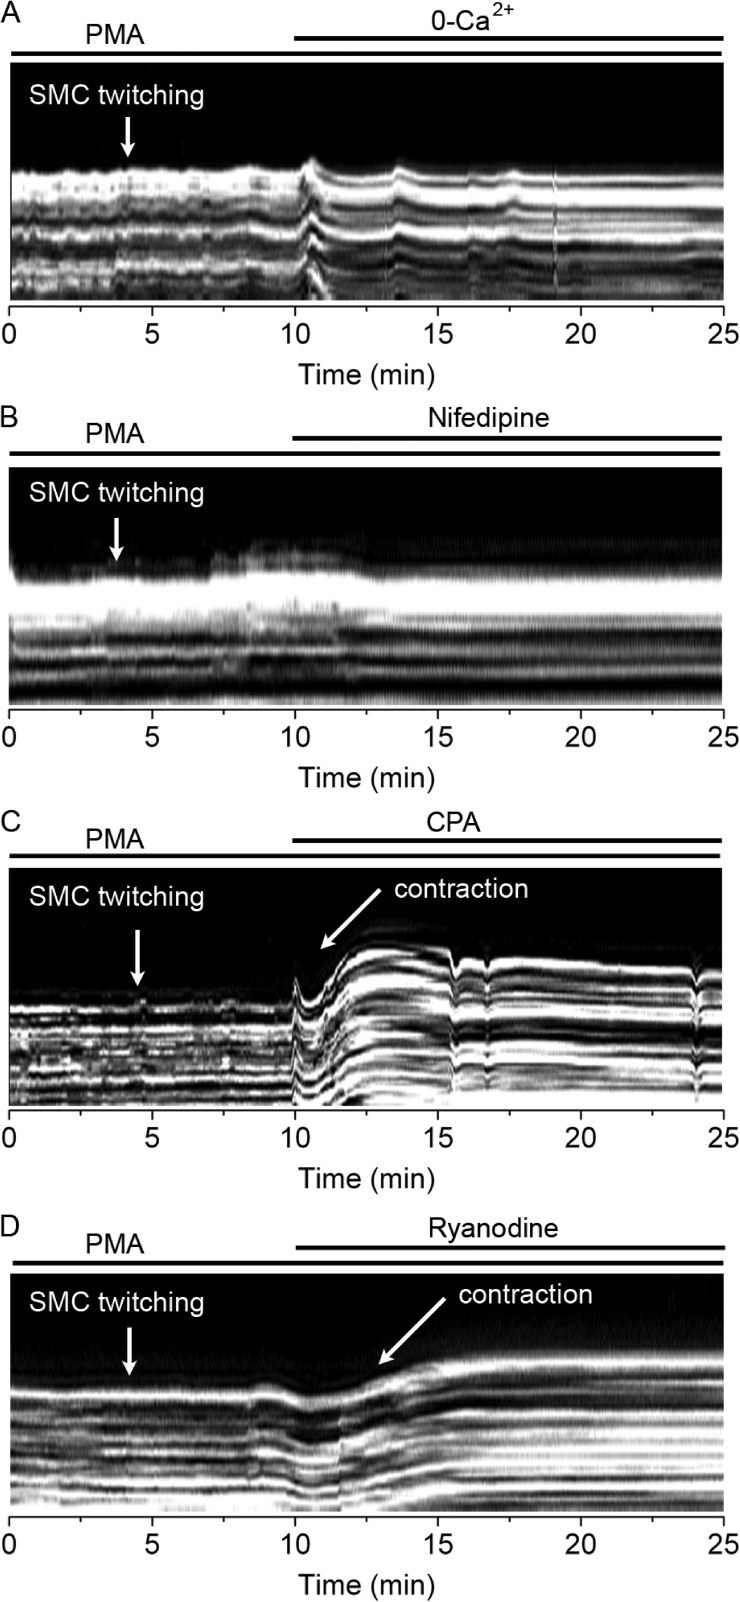 Effect of extracellular Ca 2+ removal, nifedipine, CPA, and ryanodine on PMA-induced airway SMC twitching. Line scans from airway wall regions obtained from phase-contrast images (similar to that presented in Fig. 1 ) showing airway SMC twitching induced by 10 µM PMA (added 30 min before the recordings started) and their sensitivity to: (A) Ca 2+ -free sHBSS, (B) 10 µM nifedipine, (C) 10 µM CPA, or (D) 25 µM ryanodine. PMA-induced SMC twitching was inhibited by removal of extracellular Ca 2+ , nifedipine, CPA, and ryanodine. Each line scan is representative of three experiments in lung slices from two mice.